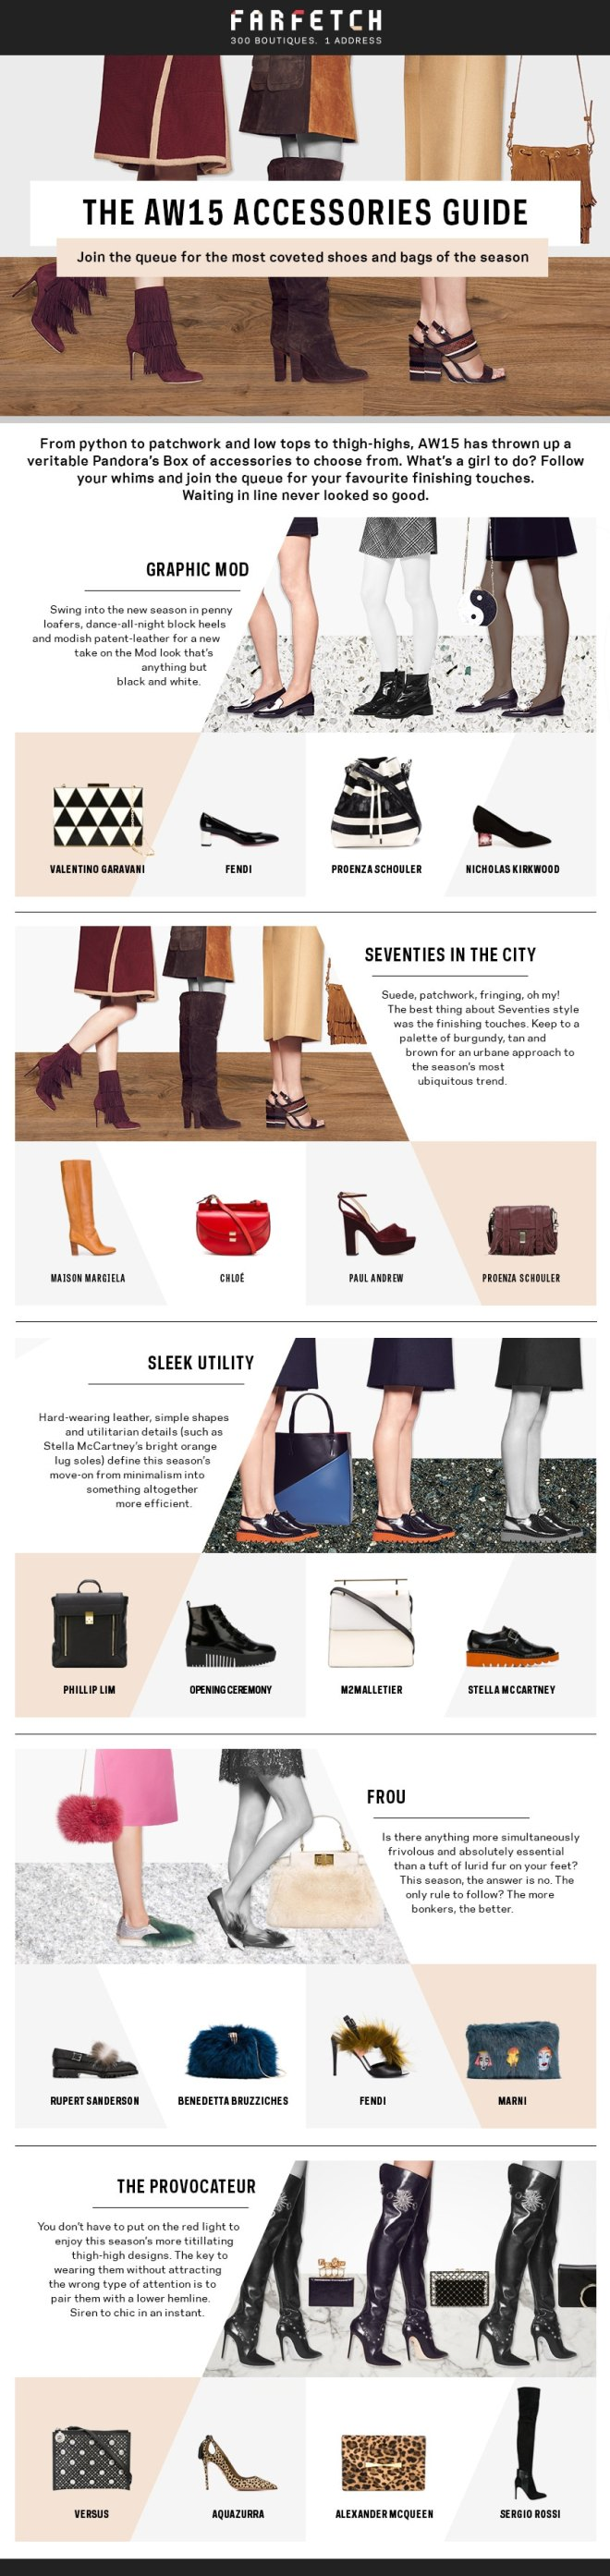 The AW15 Accessories Guide